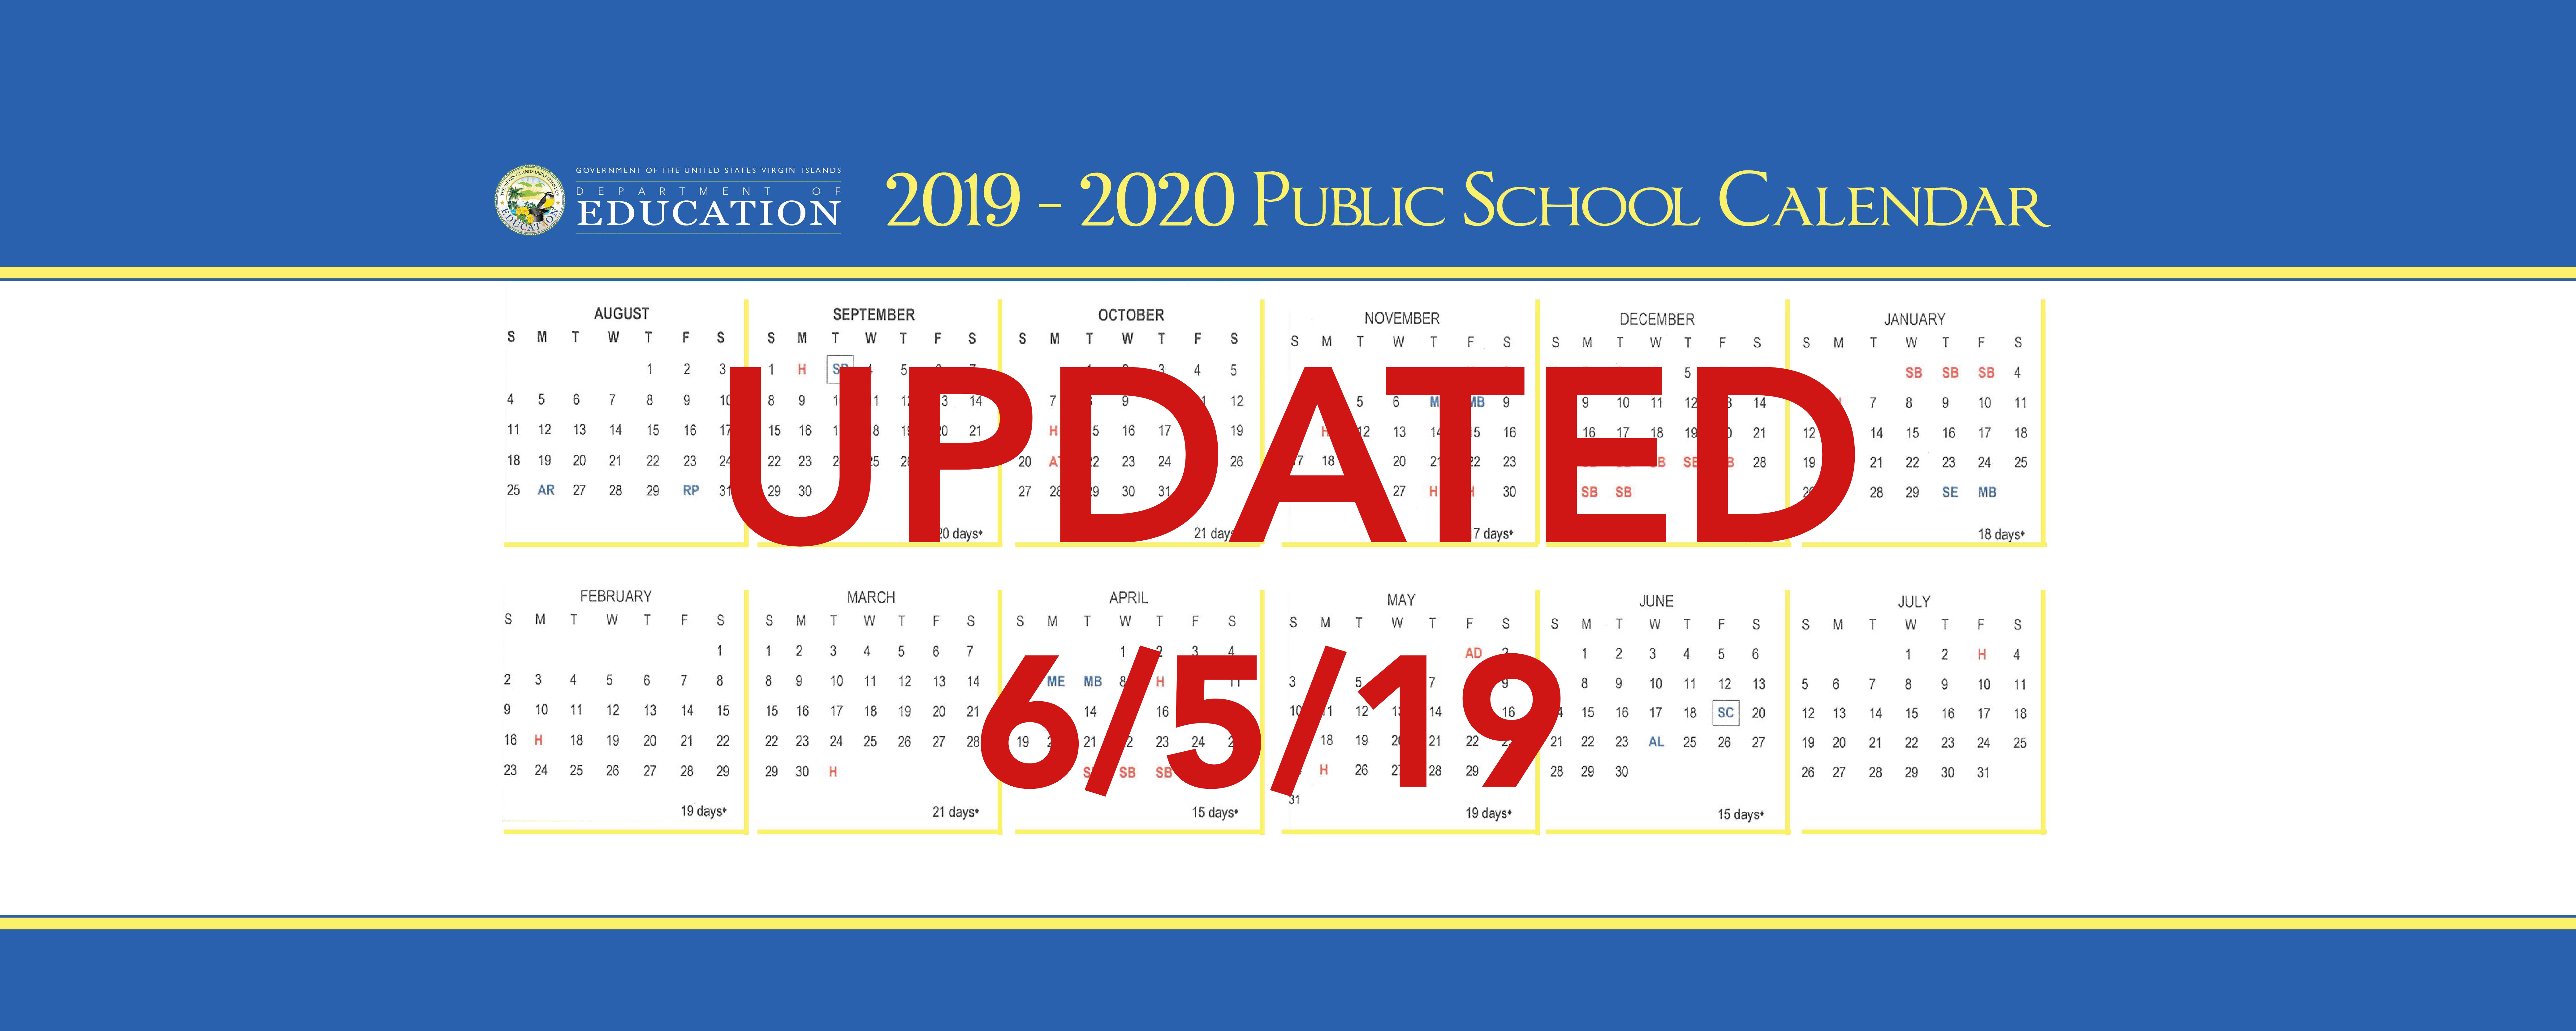 2019-2020 Public School Calendar Announced